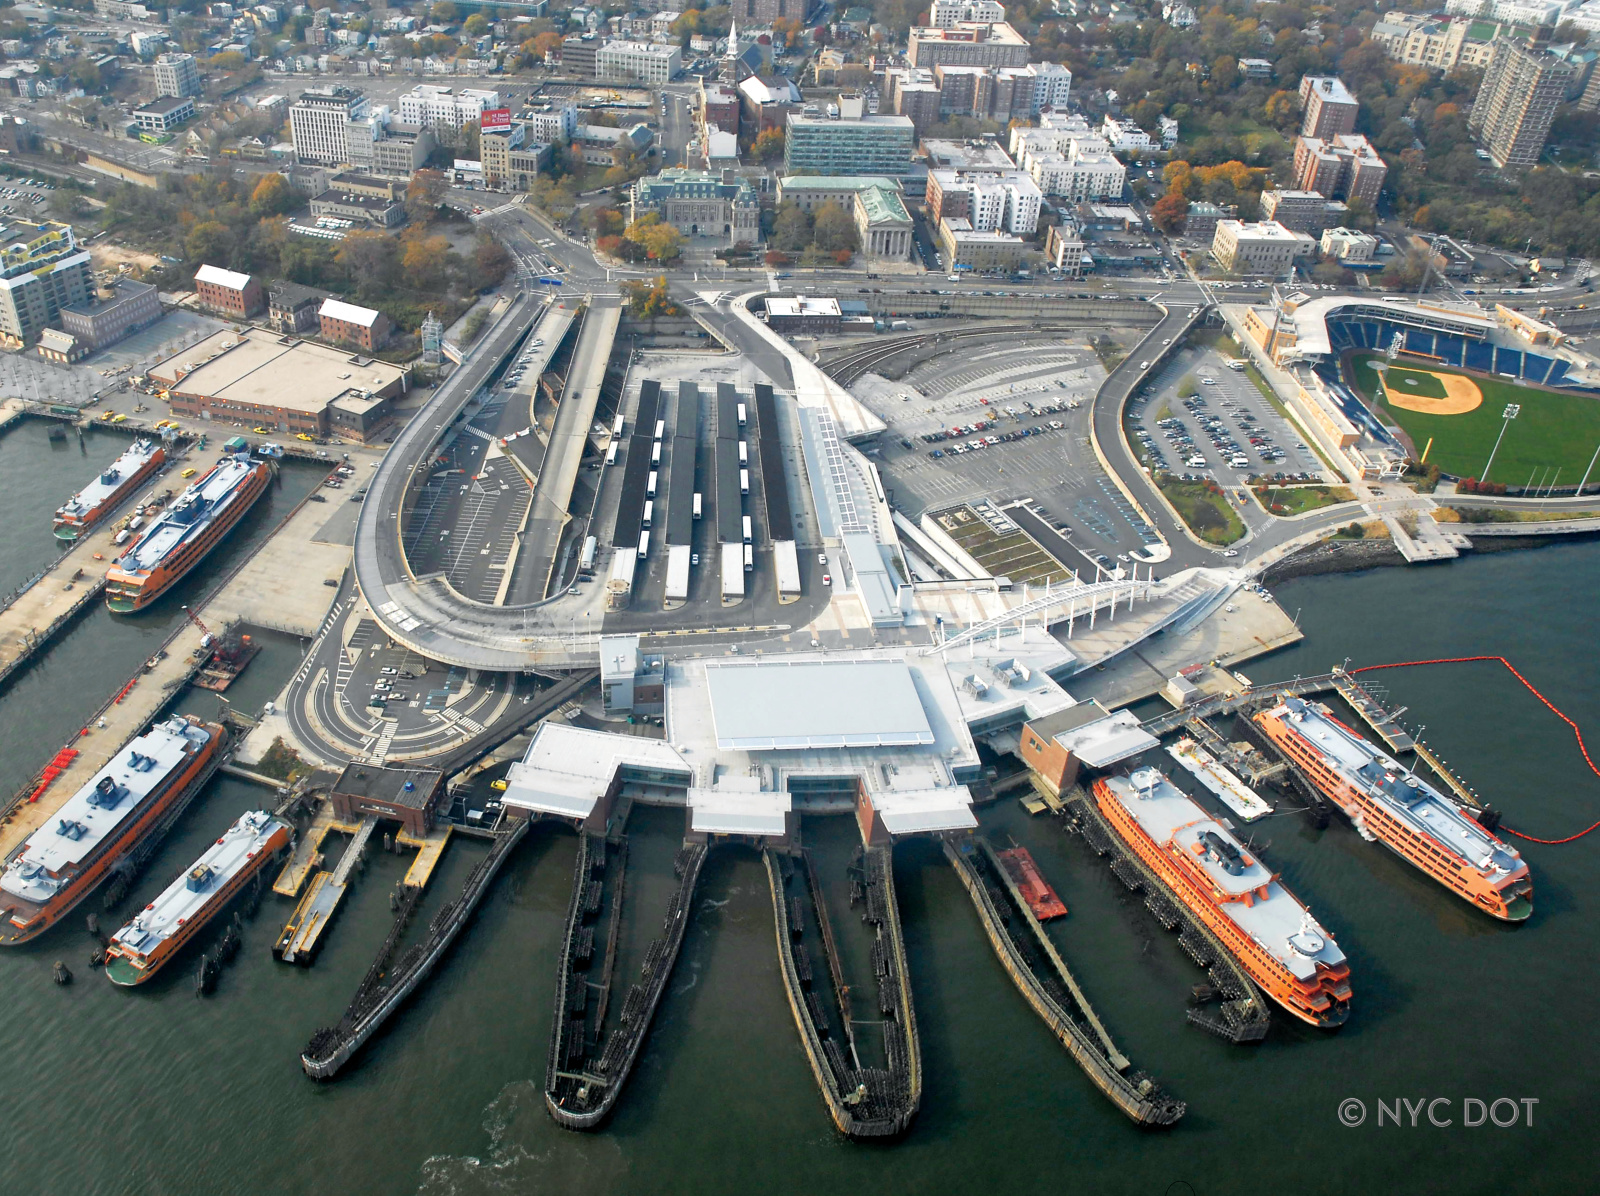 View of St. George Ferry Terminal from above